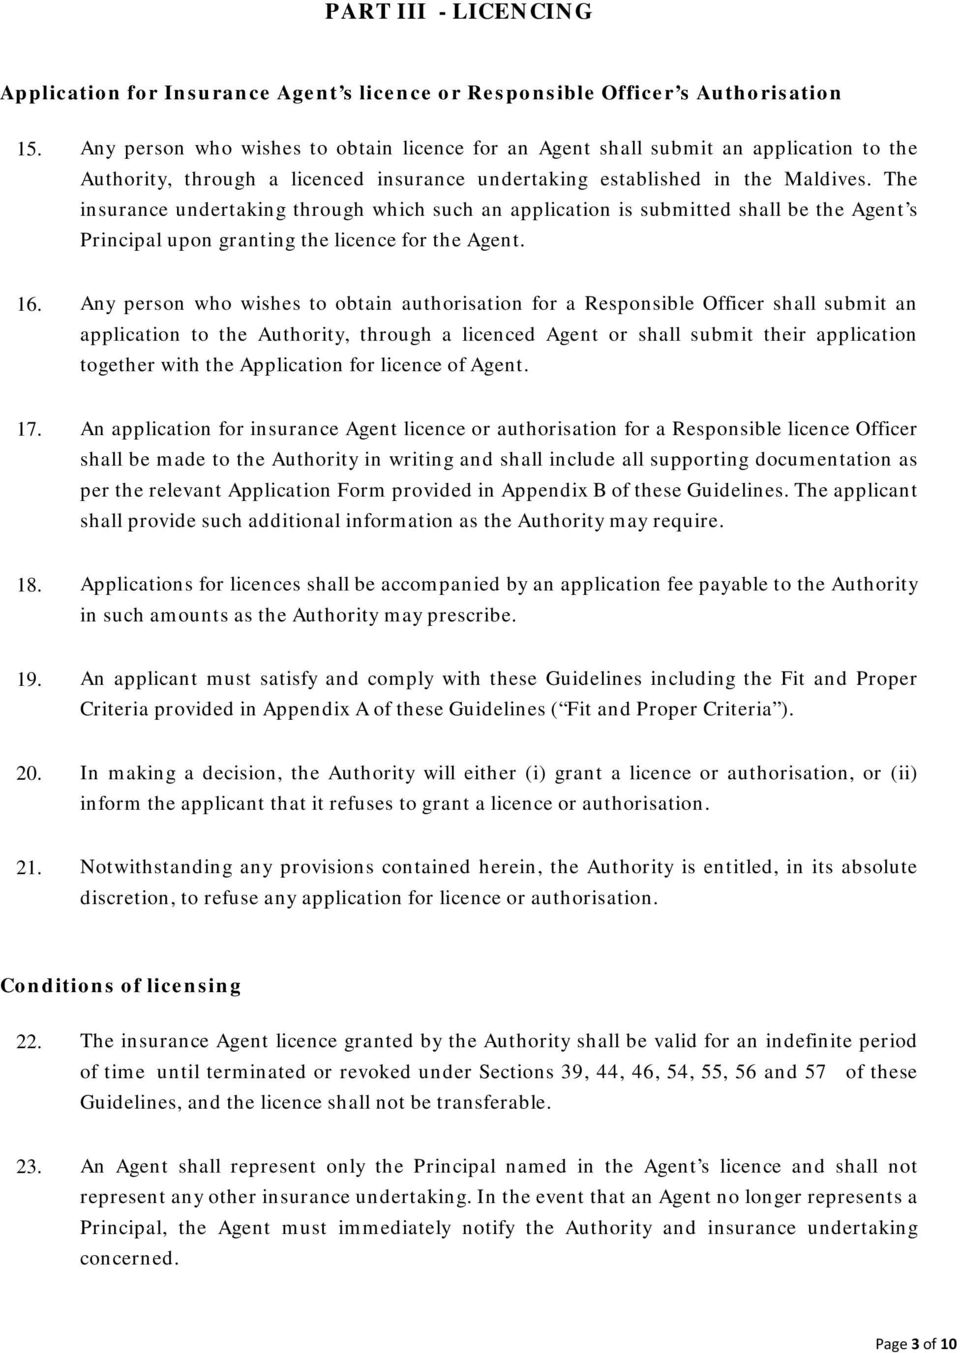 The insurance undertaking through which such an application is submitted shall be the Agent s Principal upon granting the licence for the Agent. 16.